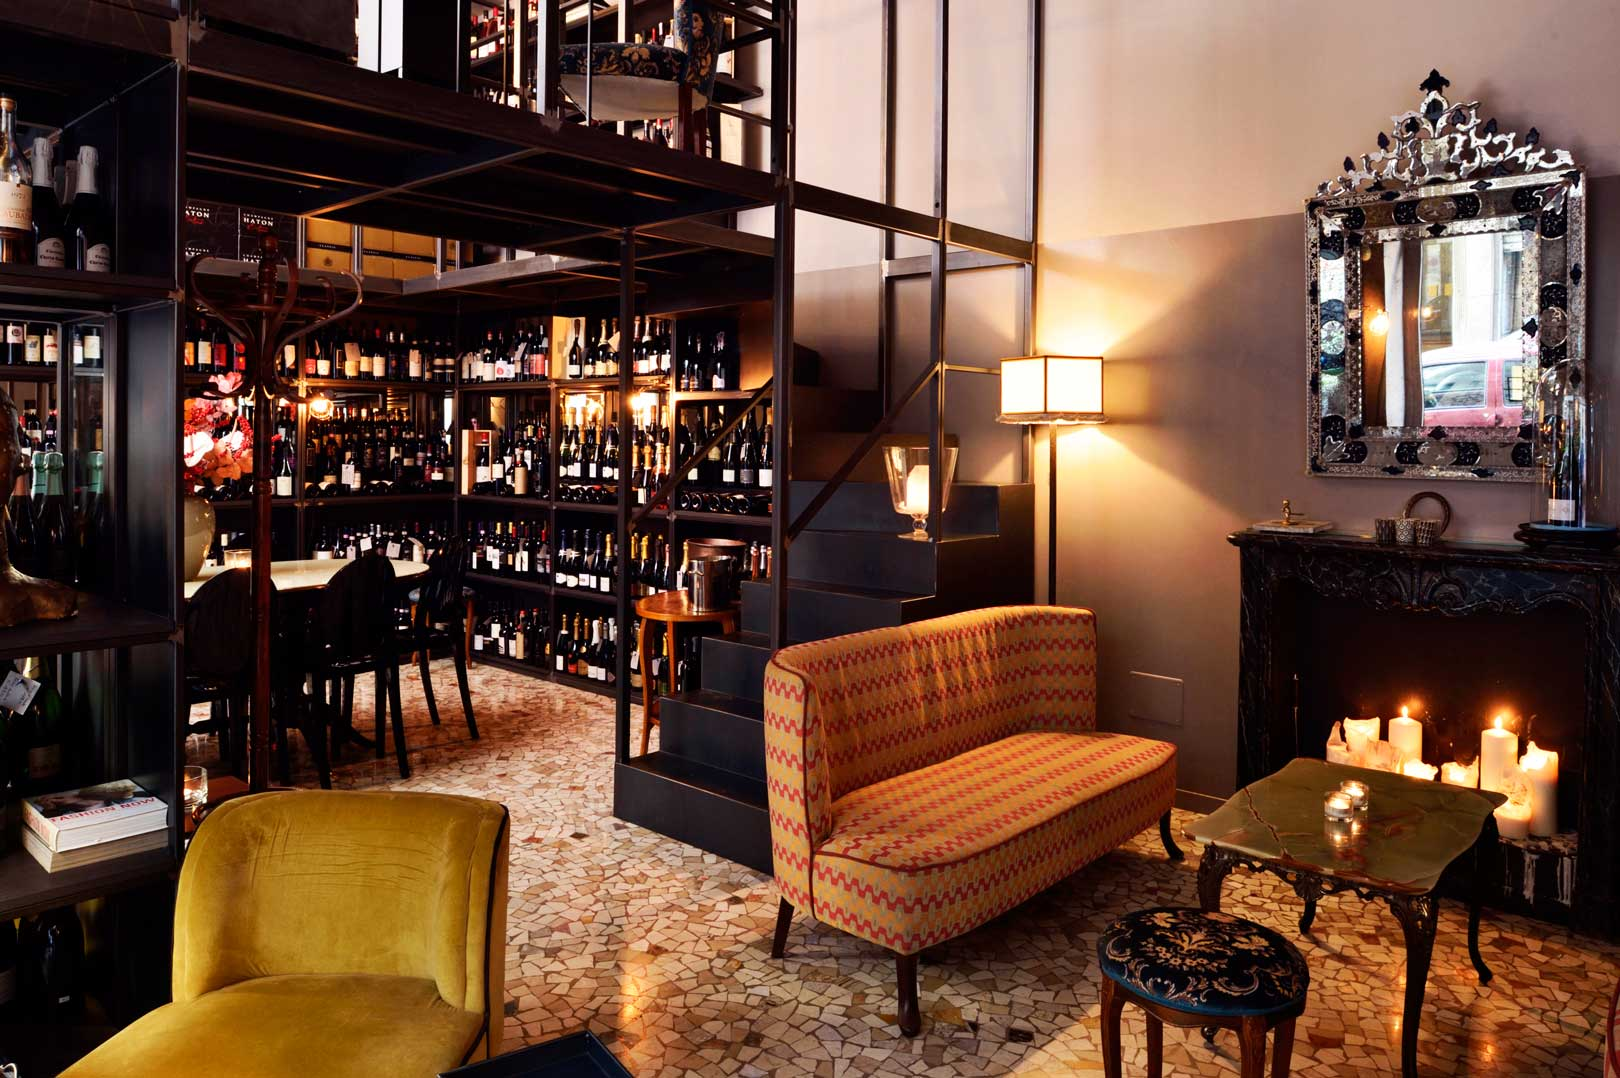 The best wine bars of milan for a tasty aperitivo for Best bars milano